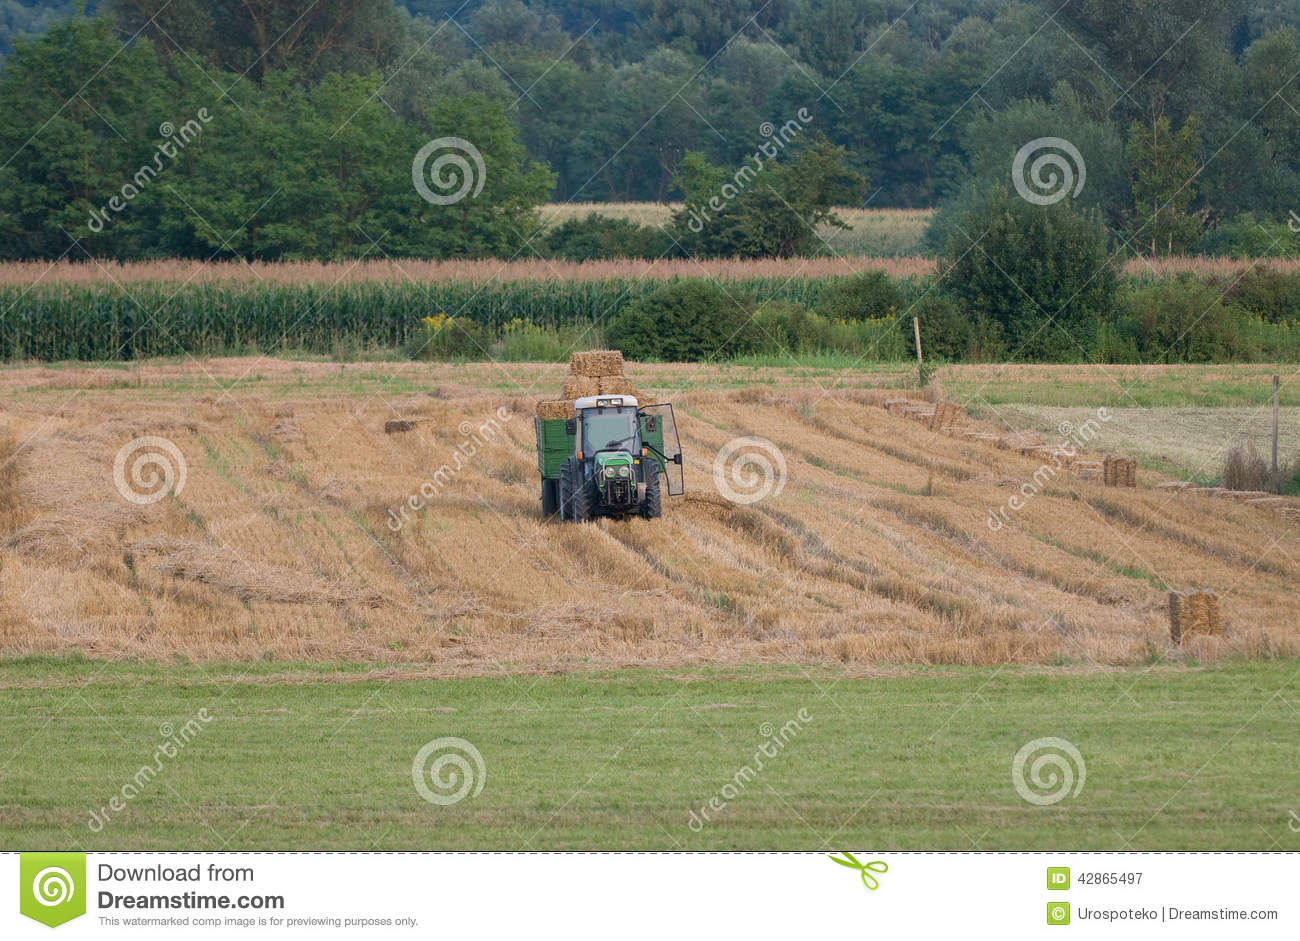 Tractor Trailer Stock : Tractor with trailer full of hay bales stock image